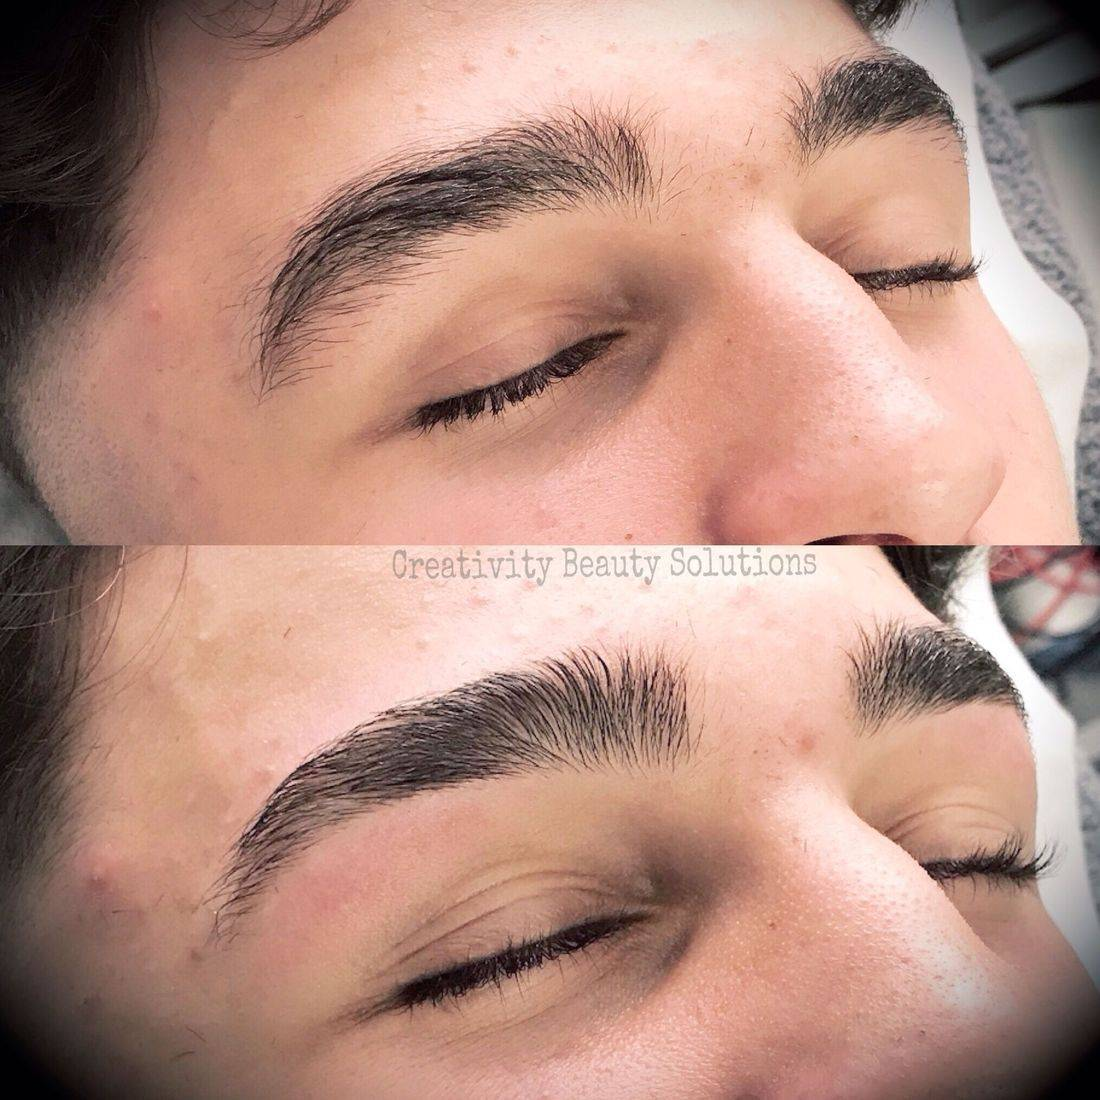 Eyebrow define, brow shape, brow tint, hd brows, eyebrow wax, man brows